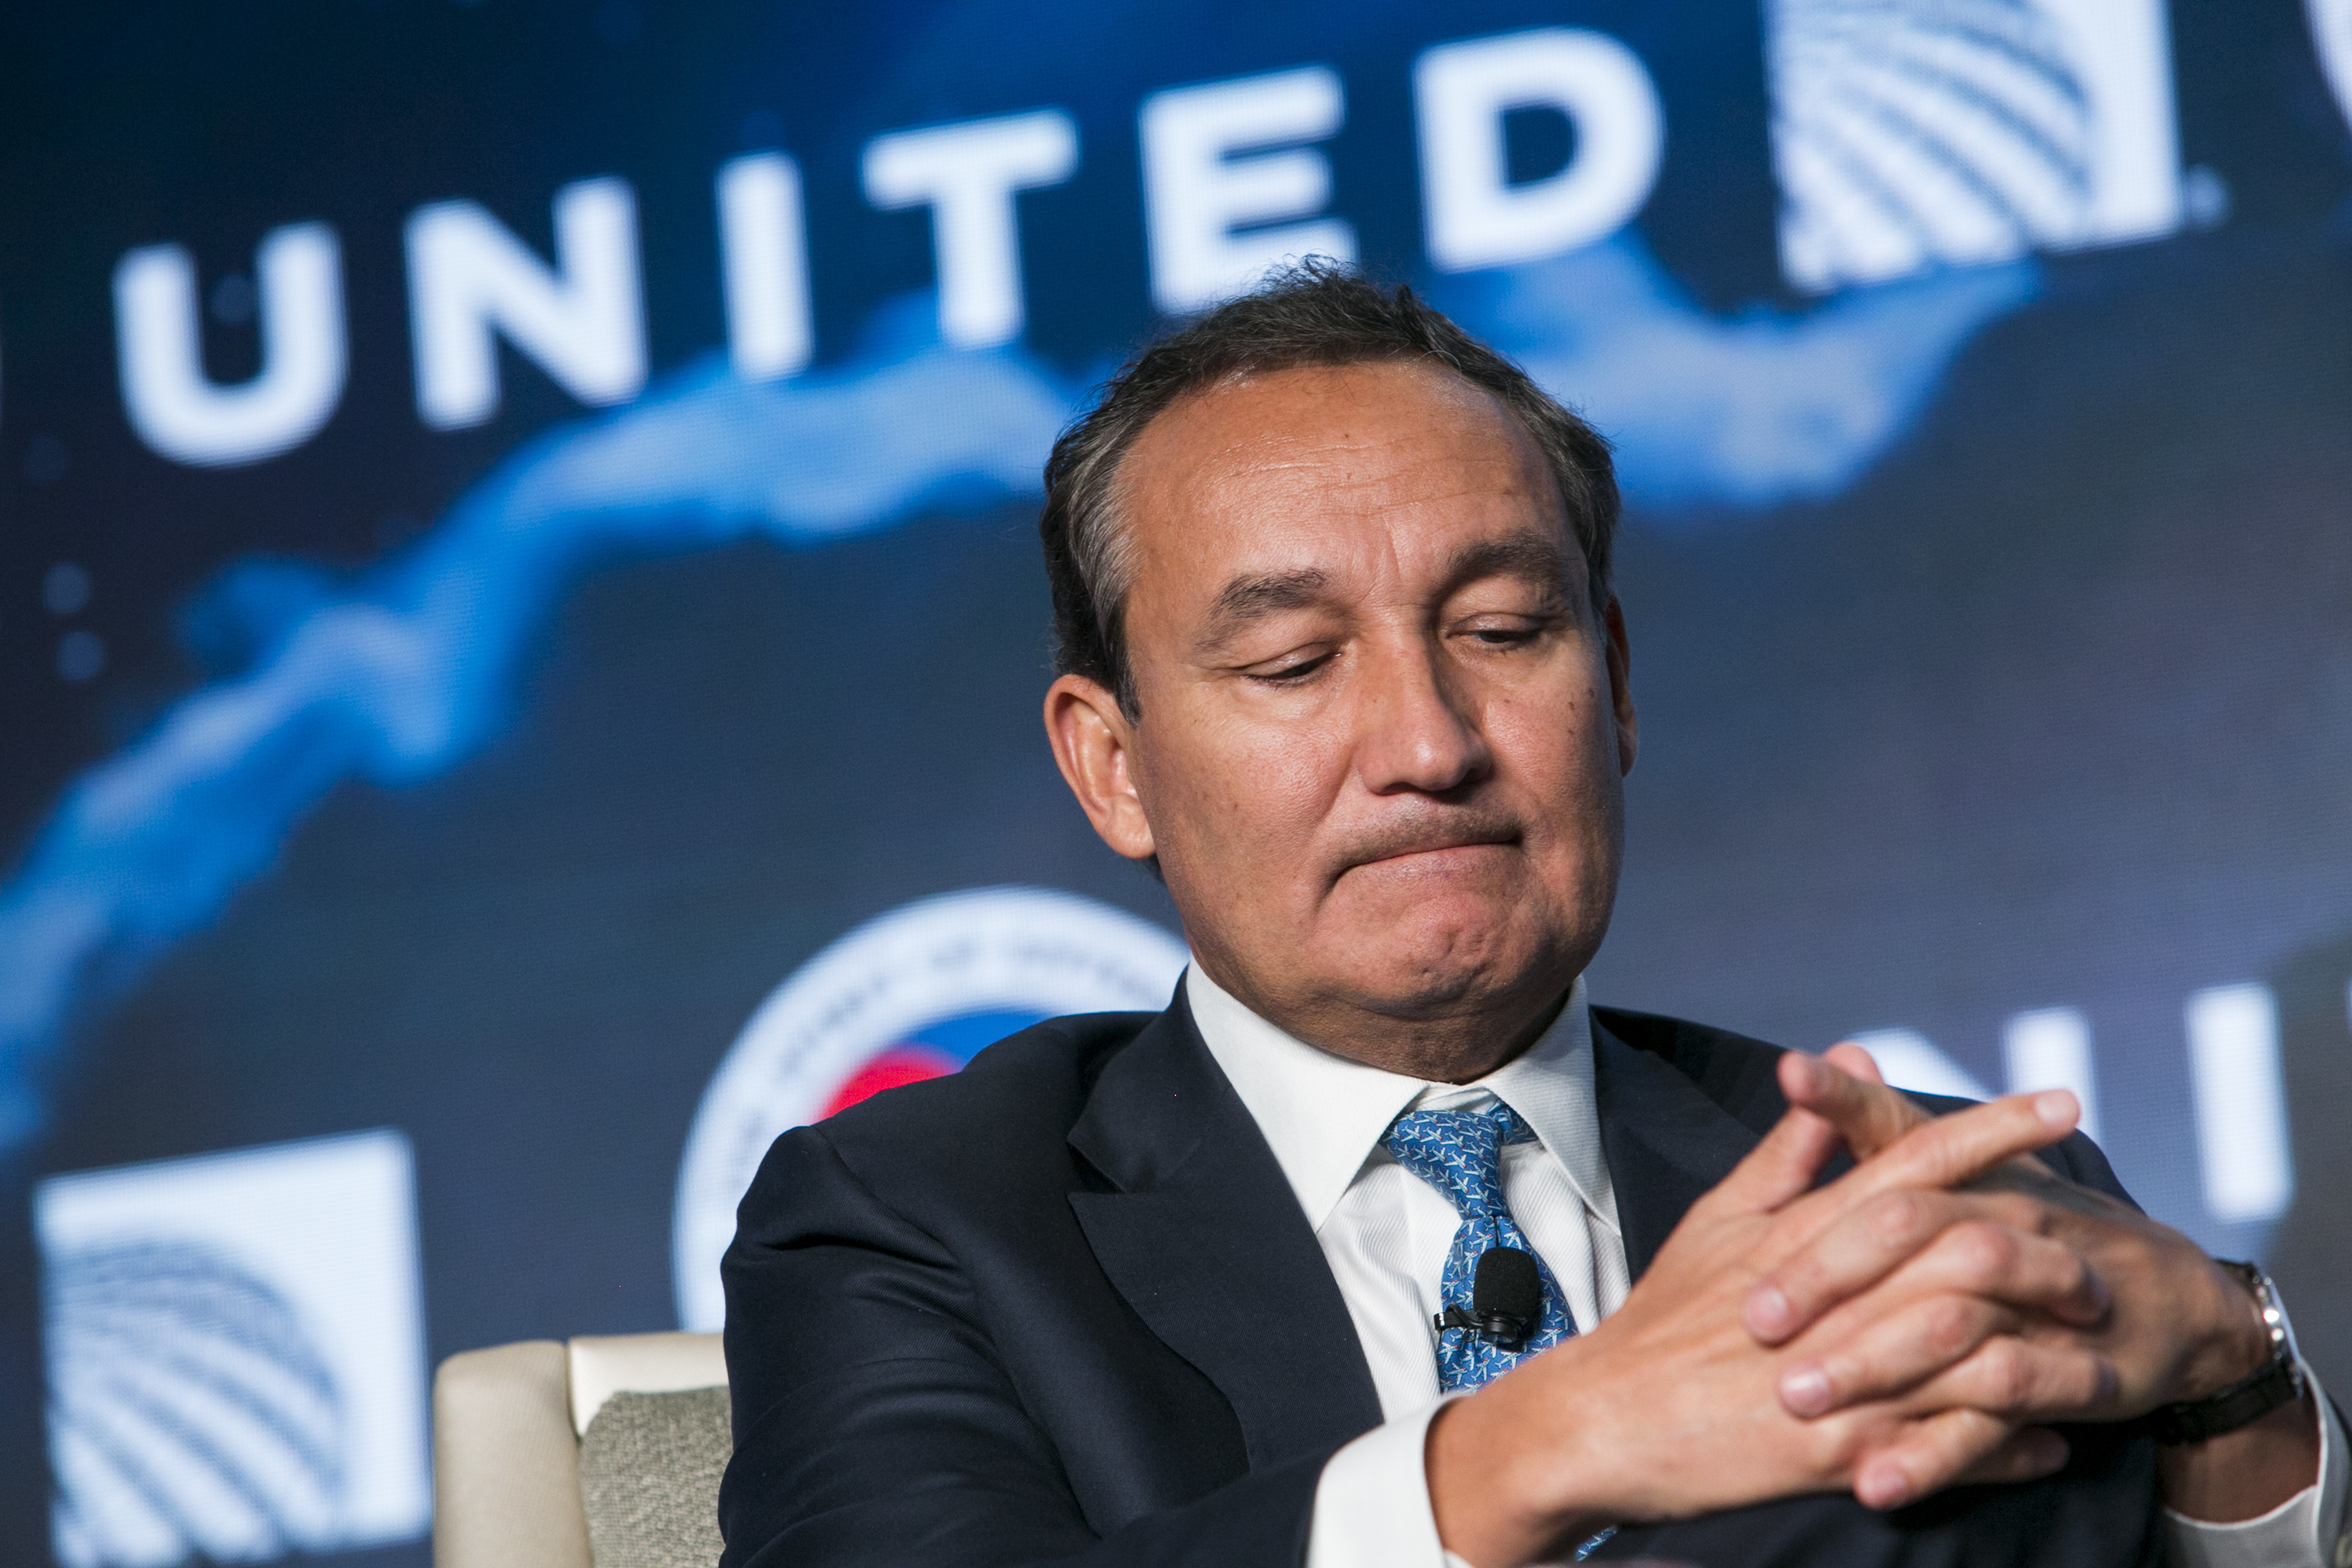 Oscar Munoz, Chief Executive Officer, United Airlines, speaks during the 2017 Aviation Summit hosted by the U.S. Chamber Of Commerce in Washington, D.C., on March 2, 2017.